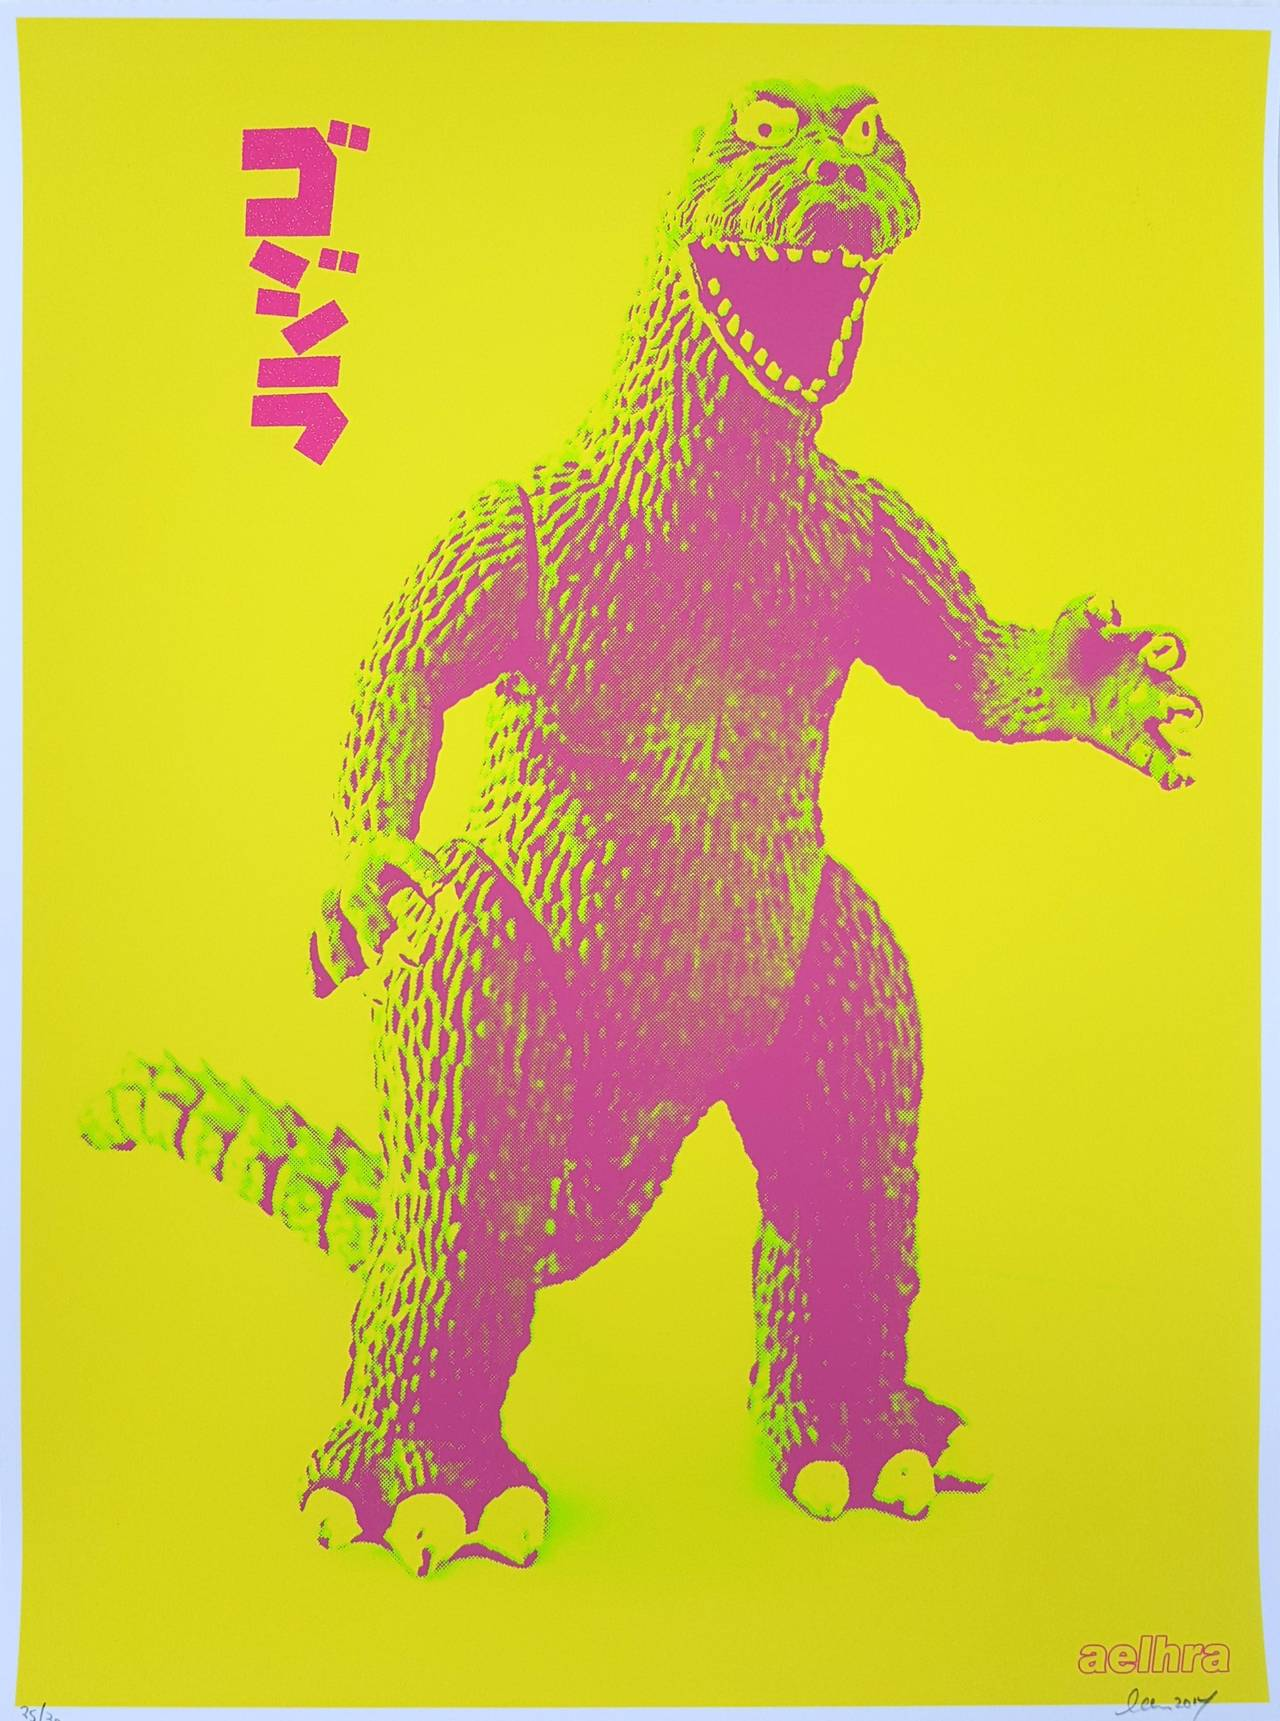 Aelhra - Gojira Godzilla, Print For Sale at 1stdibs